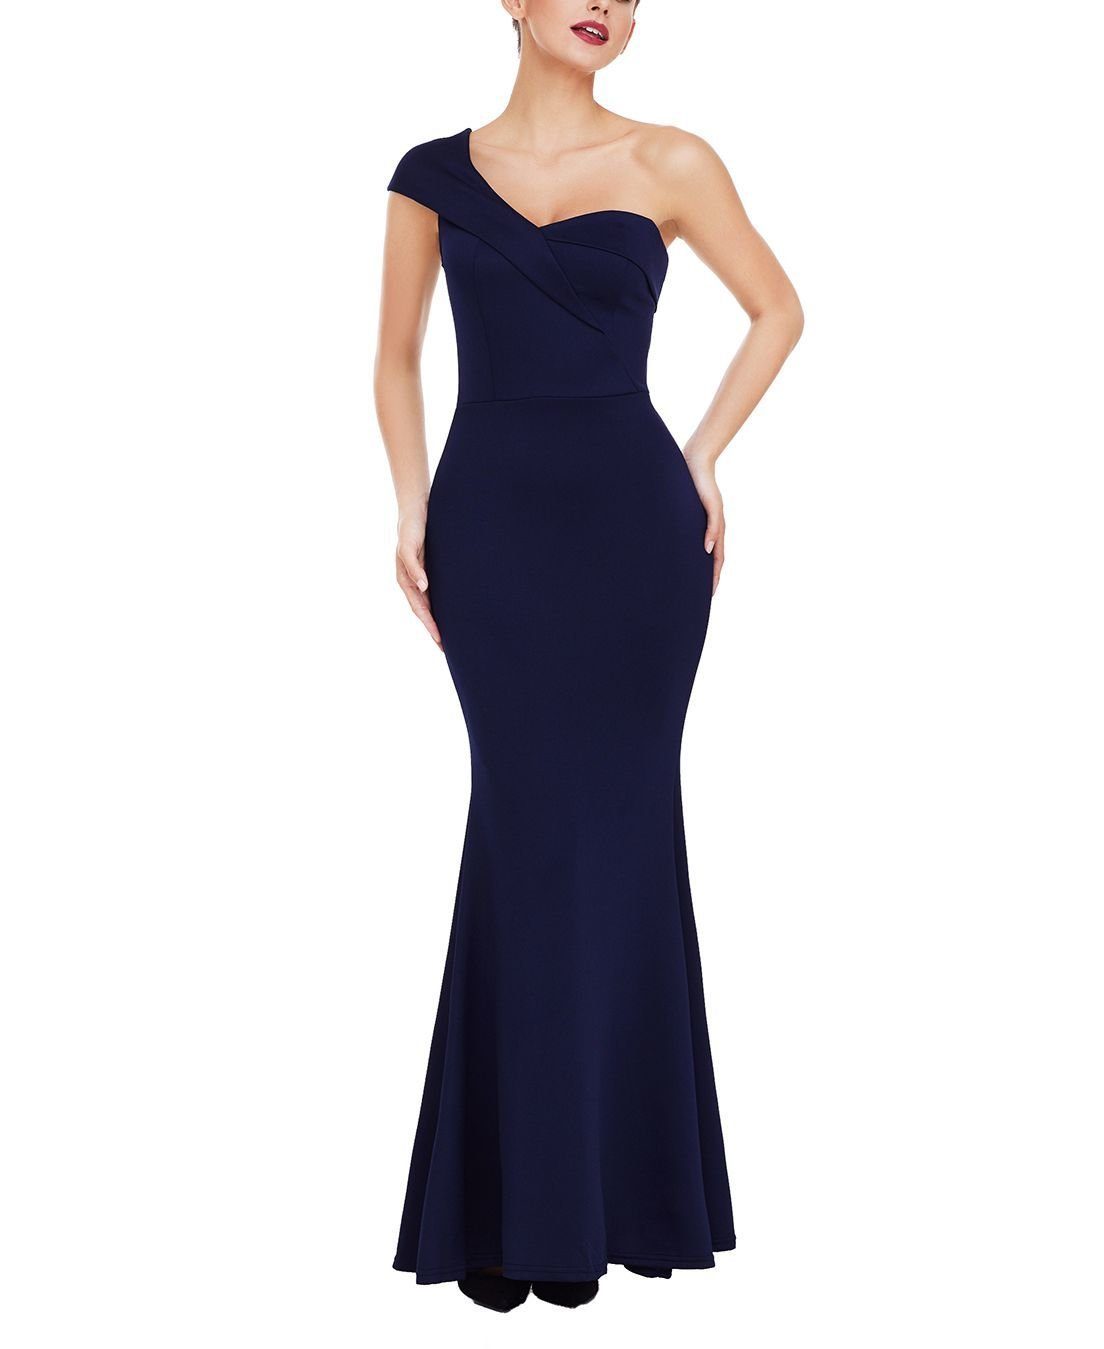 One-Shoulder Mermaid Formal Dress